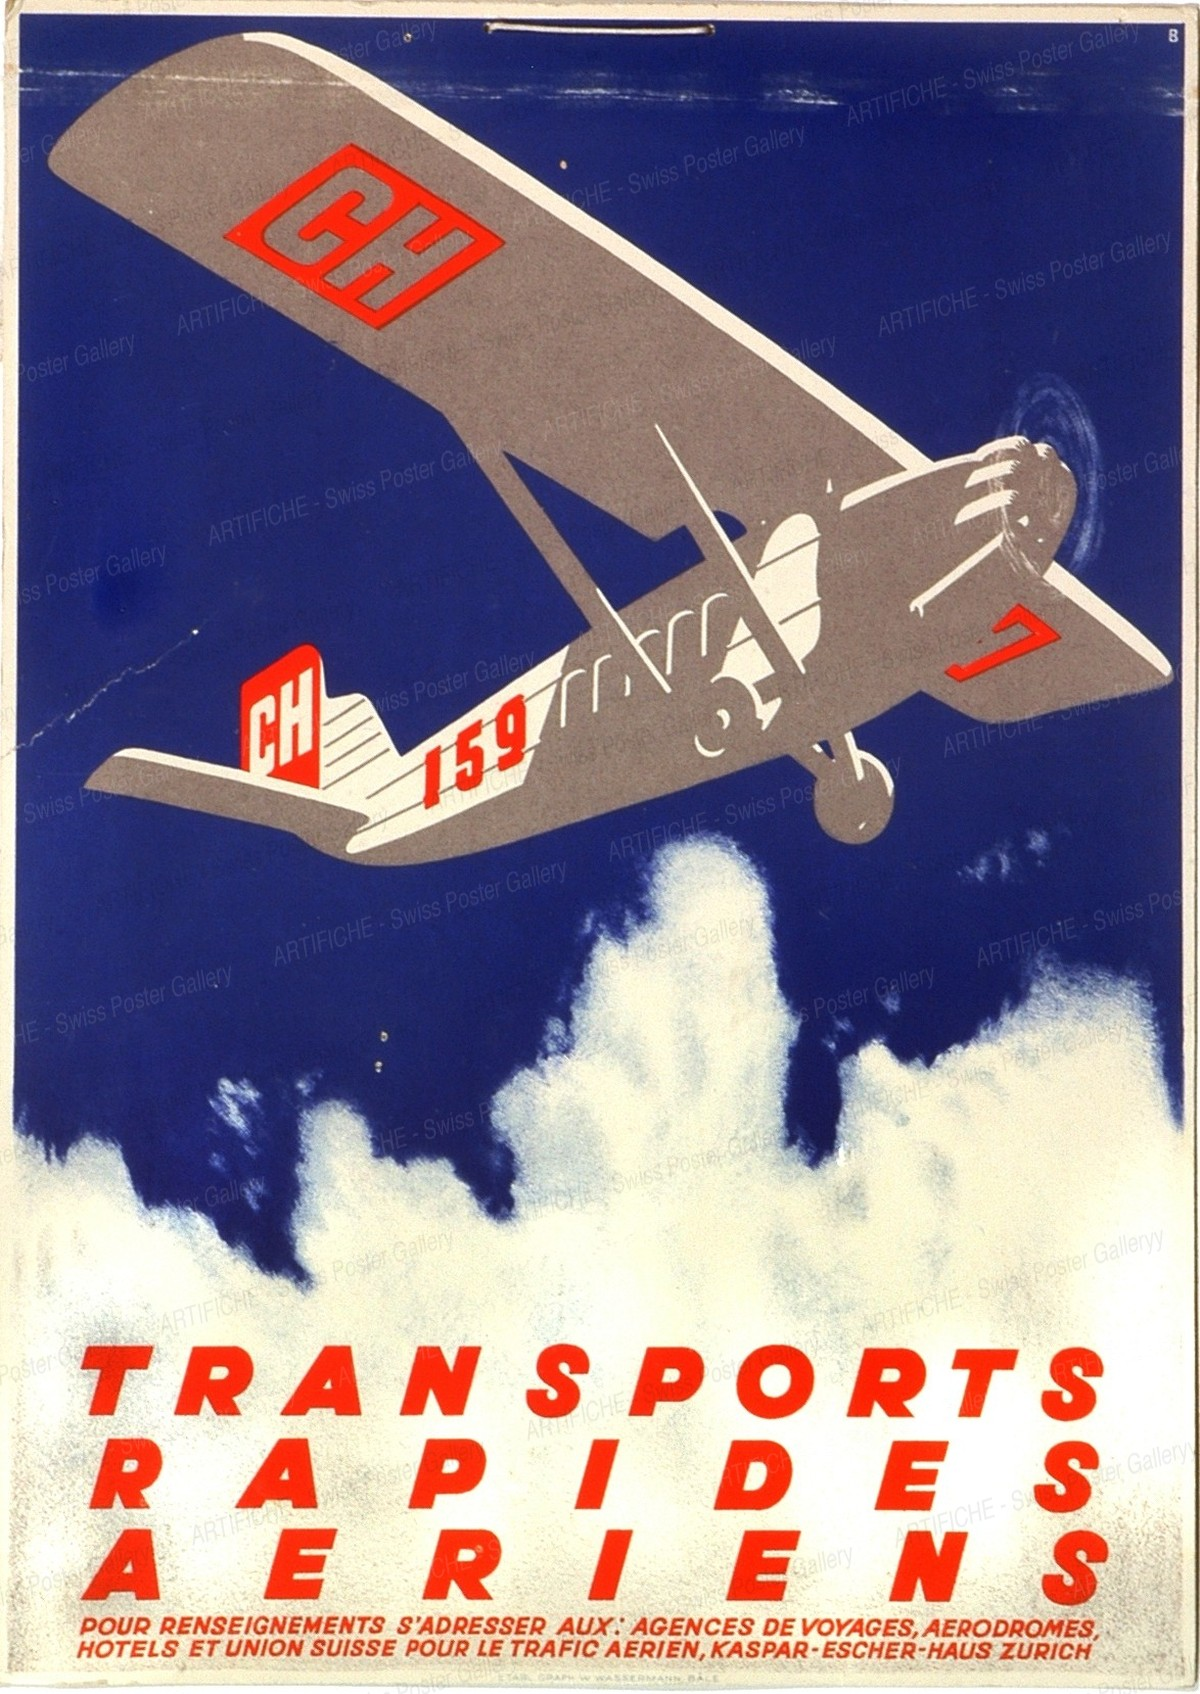 TRANSPORTS RAPIDES AERIENS – CH 159, Otto Baumberger